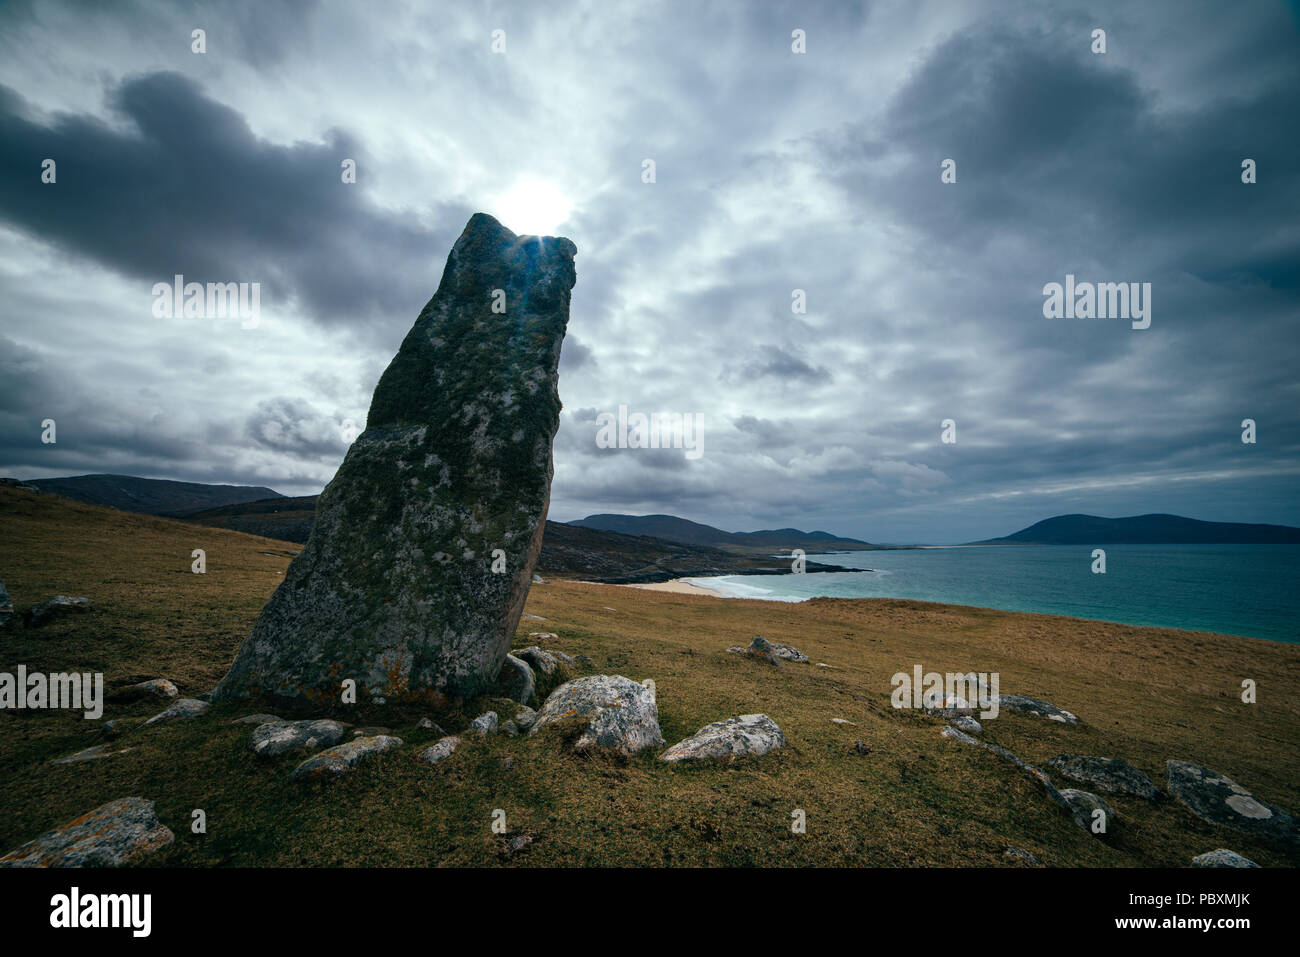 Macleod standing stone, Isle of Harris, Scotland, UK, Europe - Stock Image